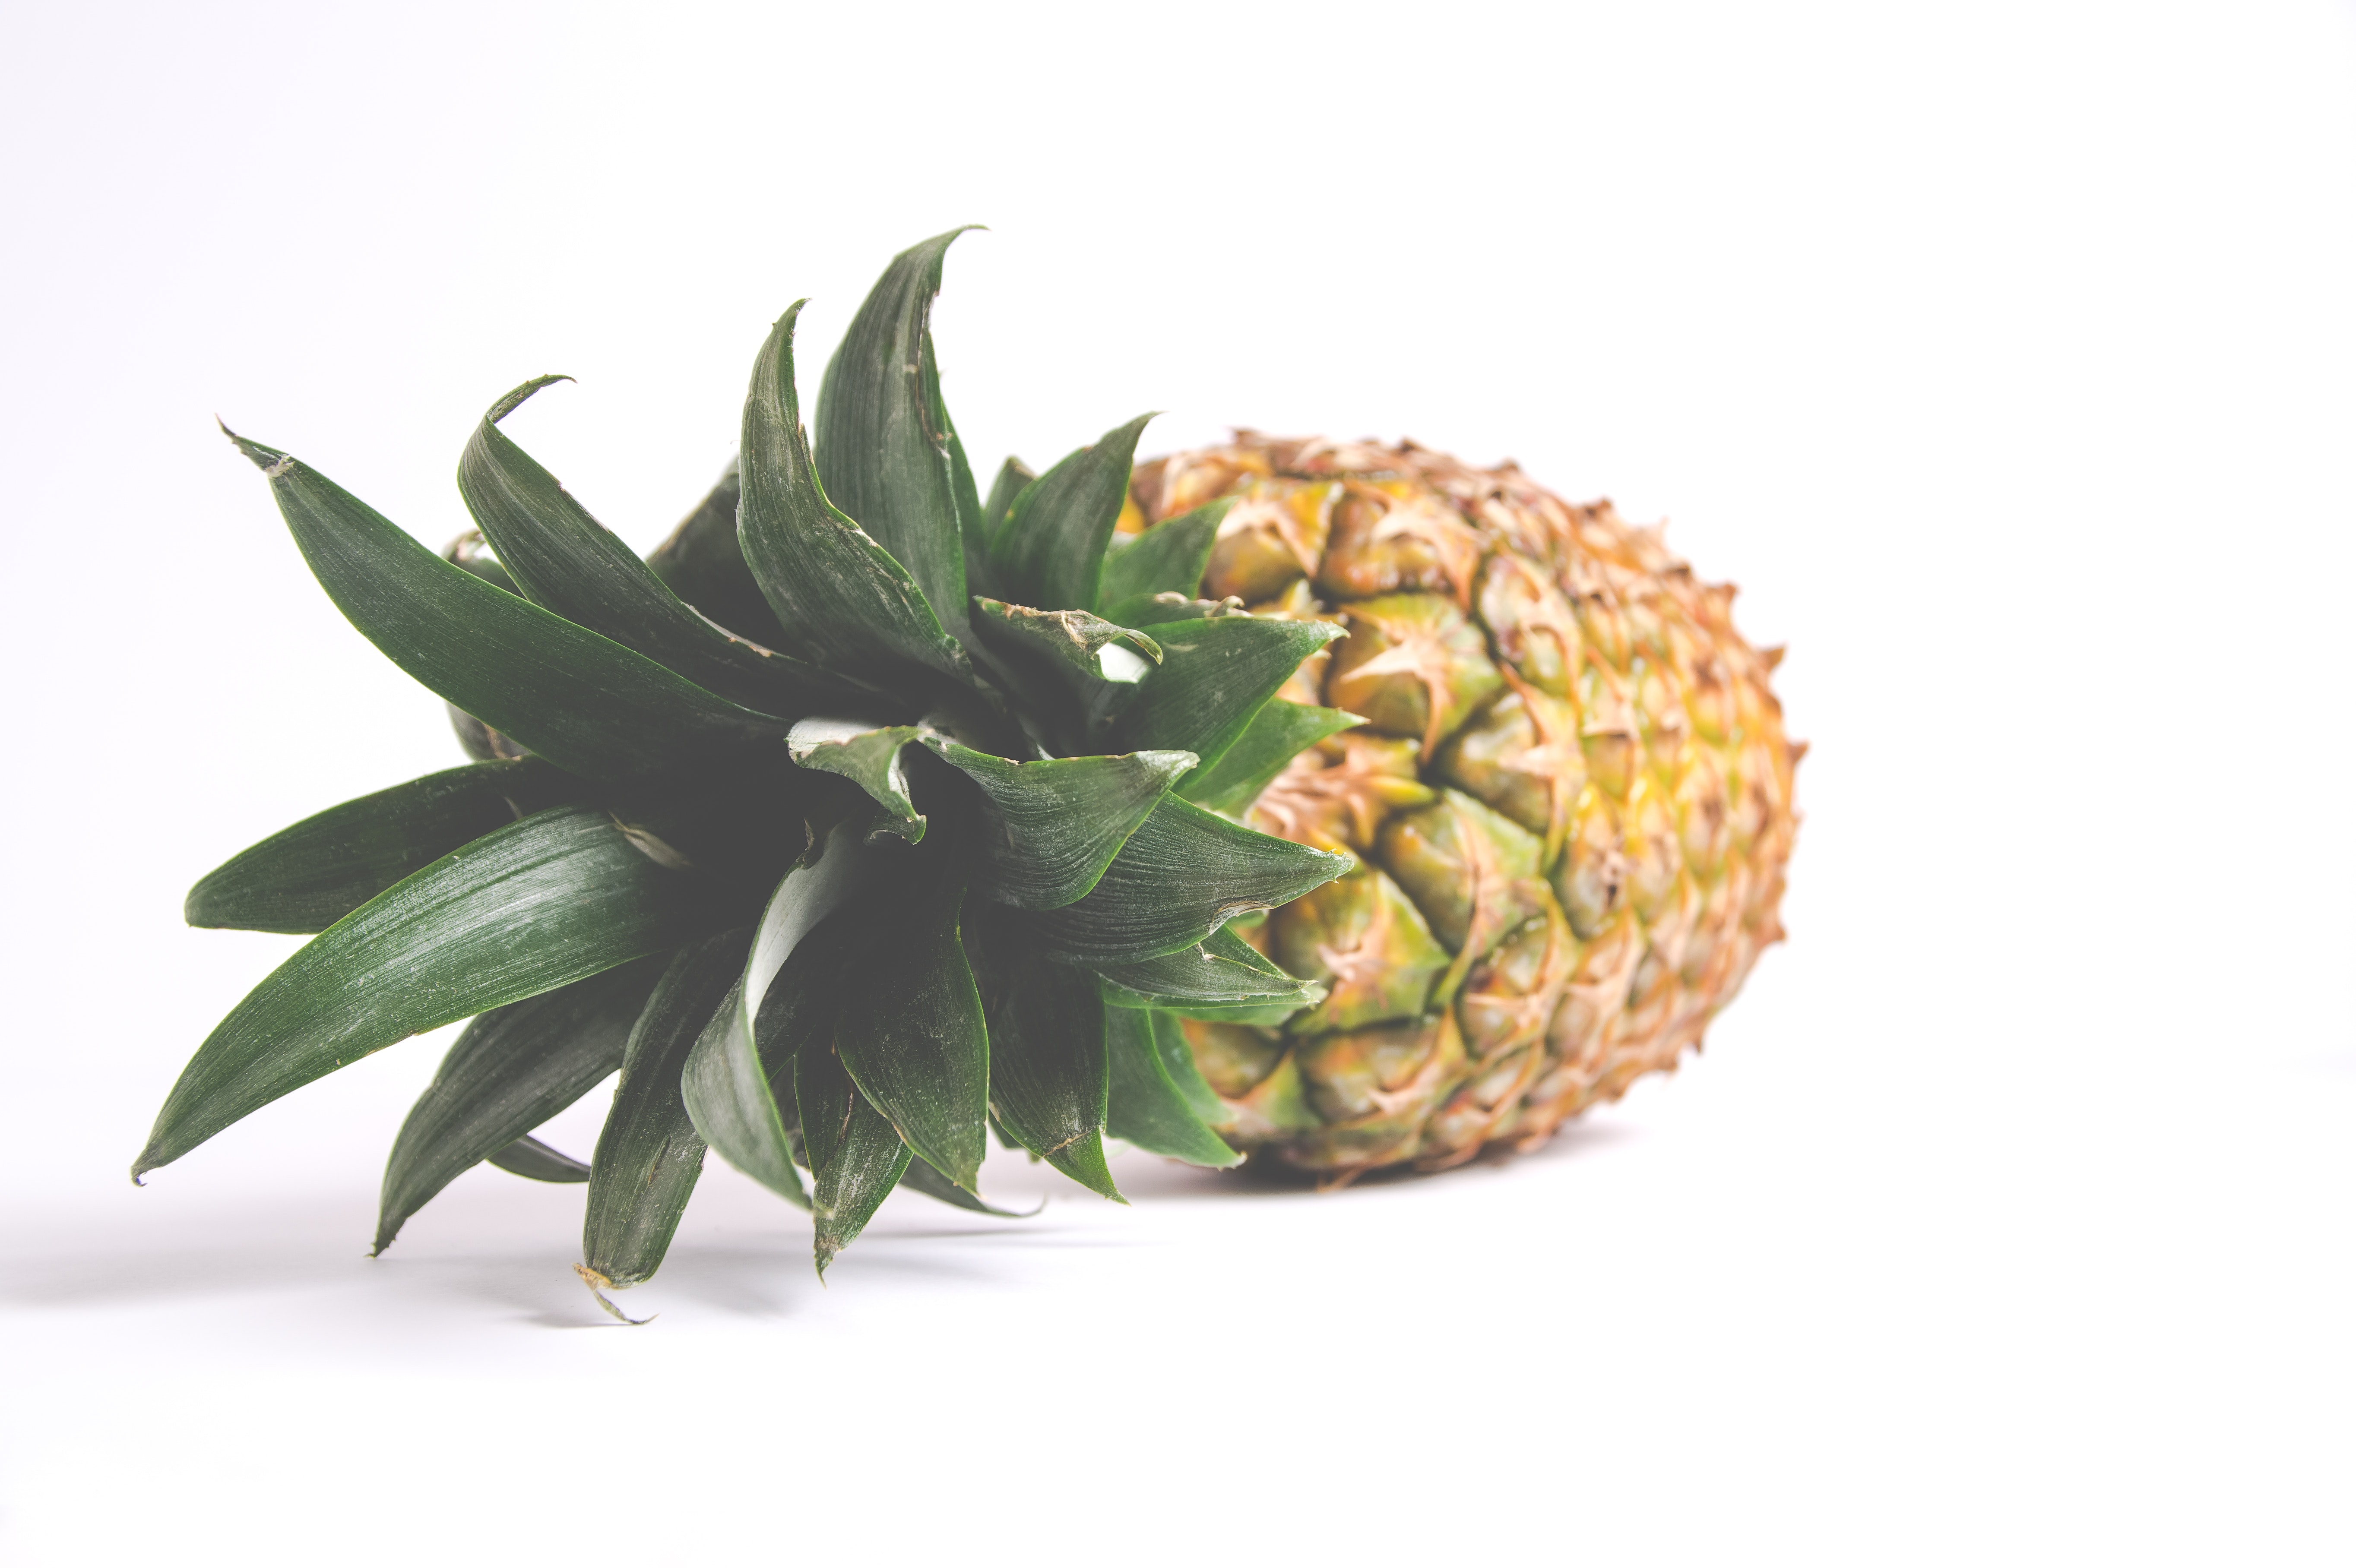 A fresh and ripe pineapple laying on its side with crown intact.